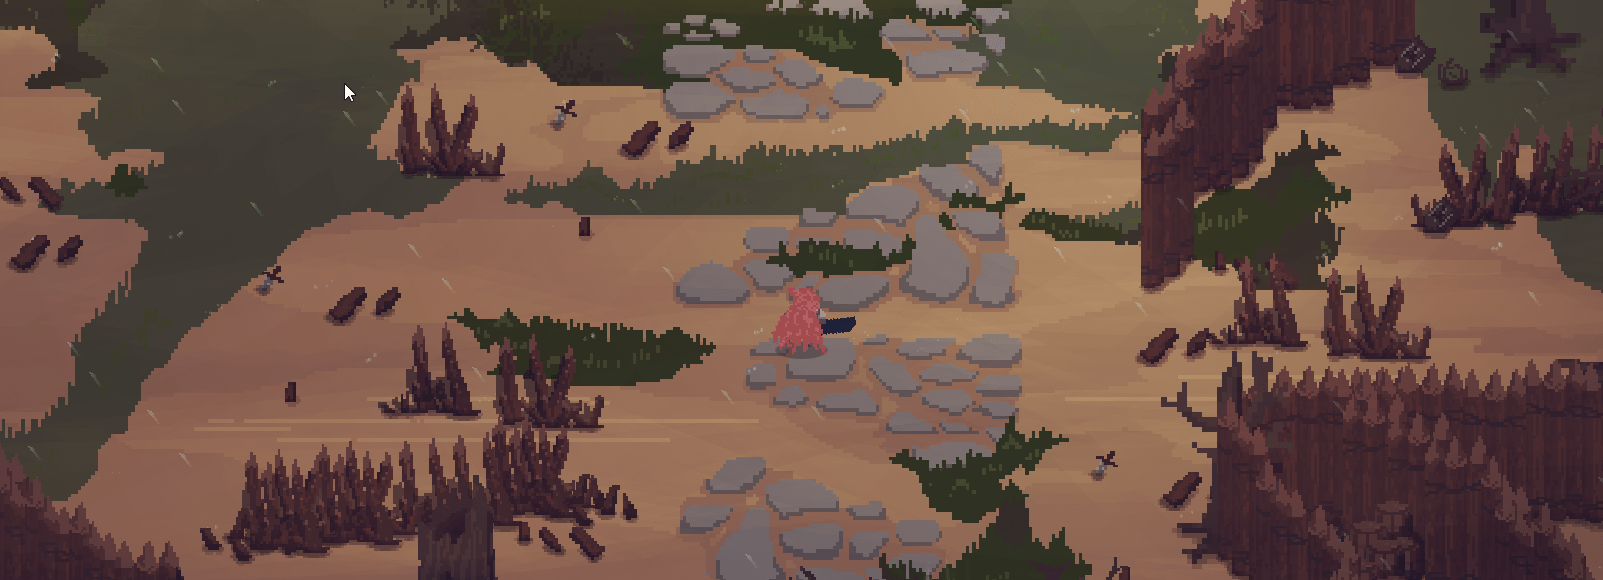 unity_2018-07-28_15-49-07.png